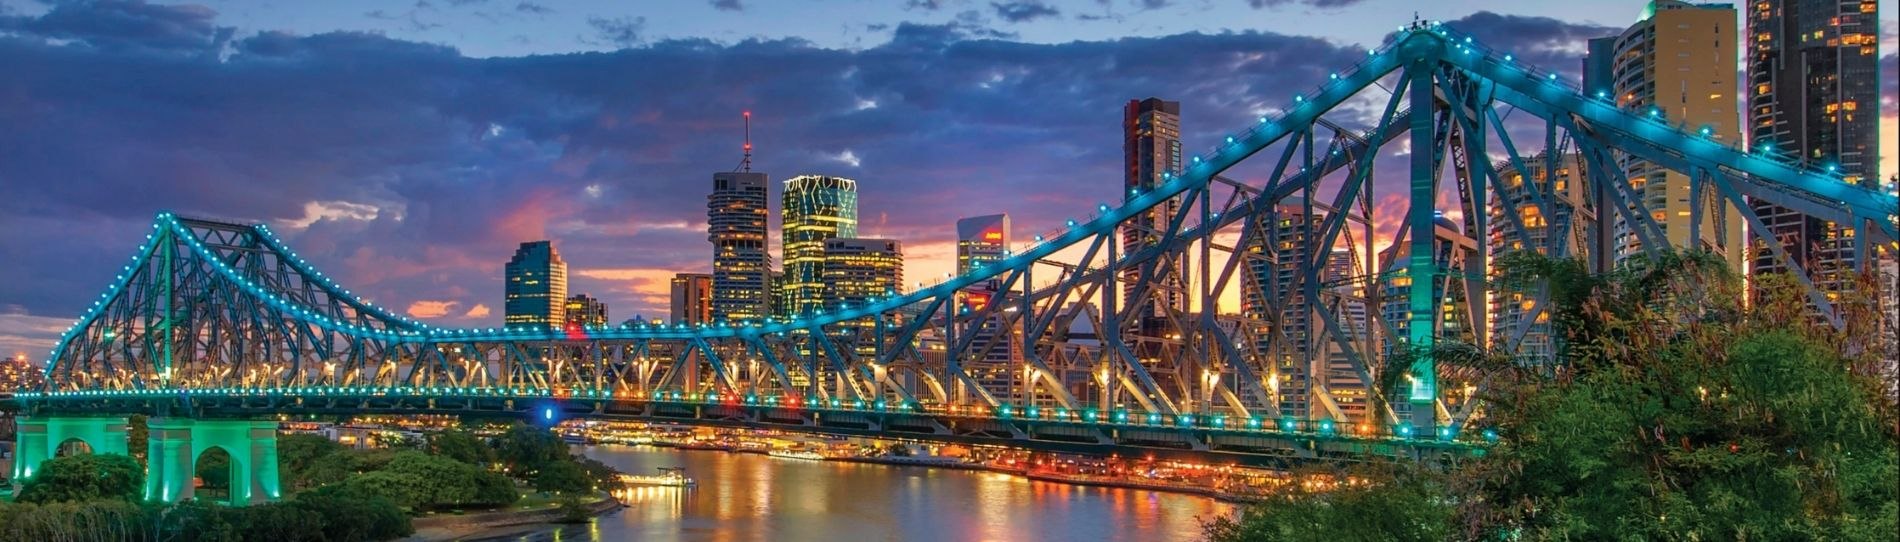 brisbane top attractions team trips